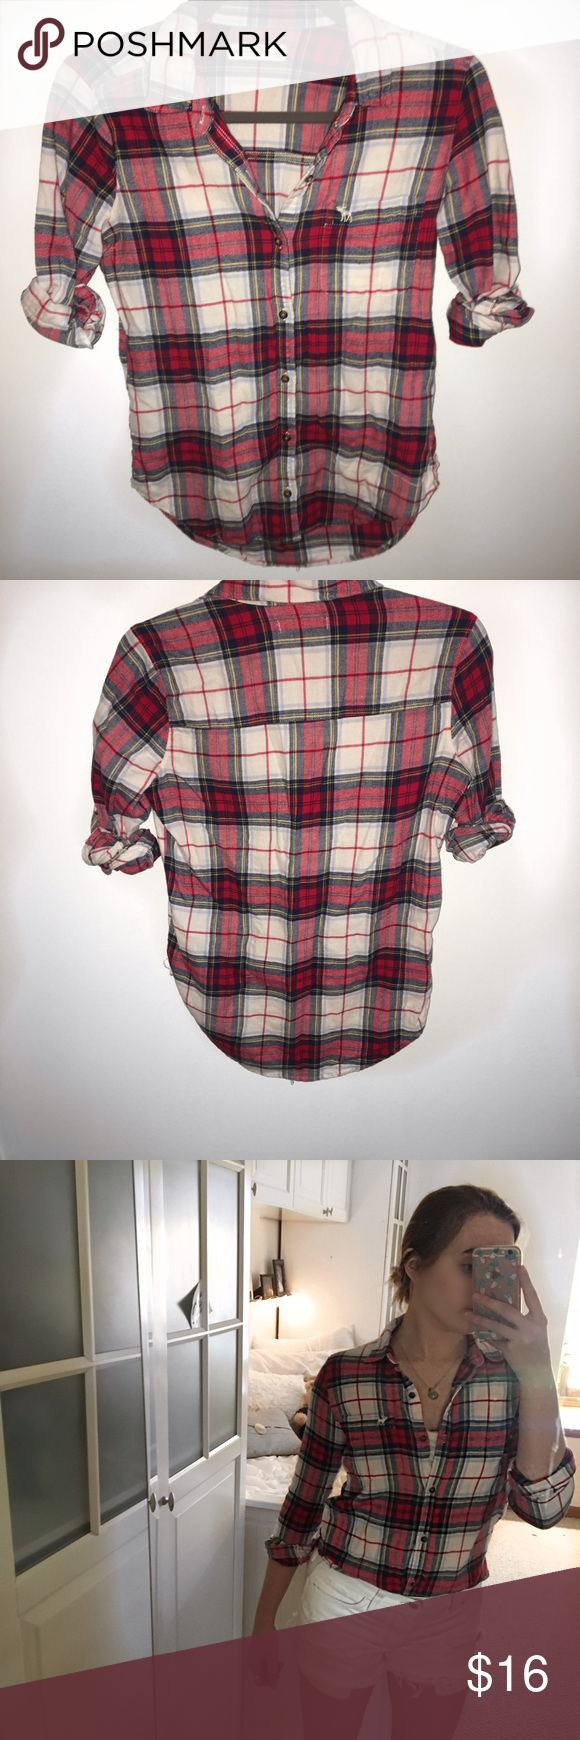 Flannel shirt season  Cozy Flannel  Flannels Flannel shirts and Abercrombie fitch